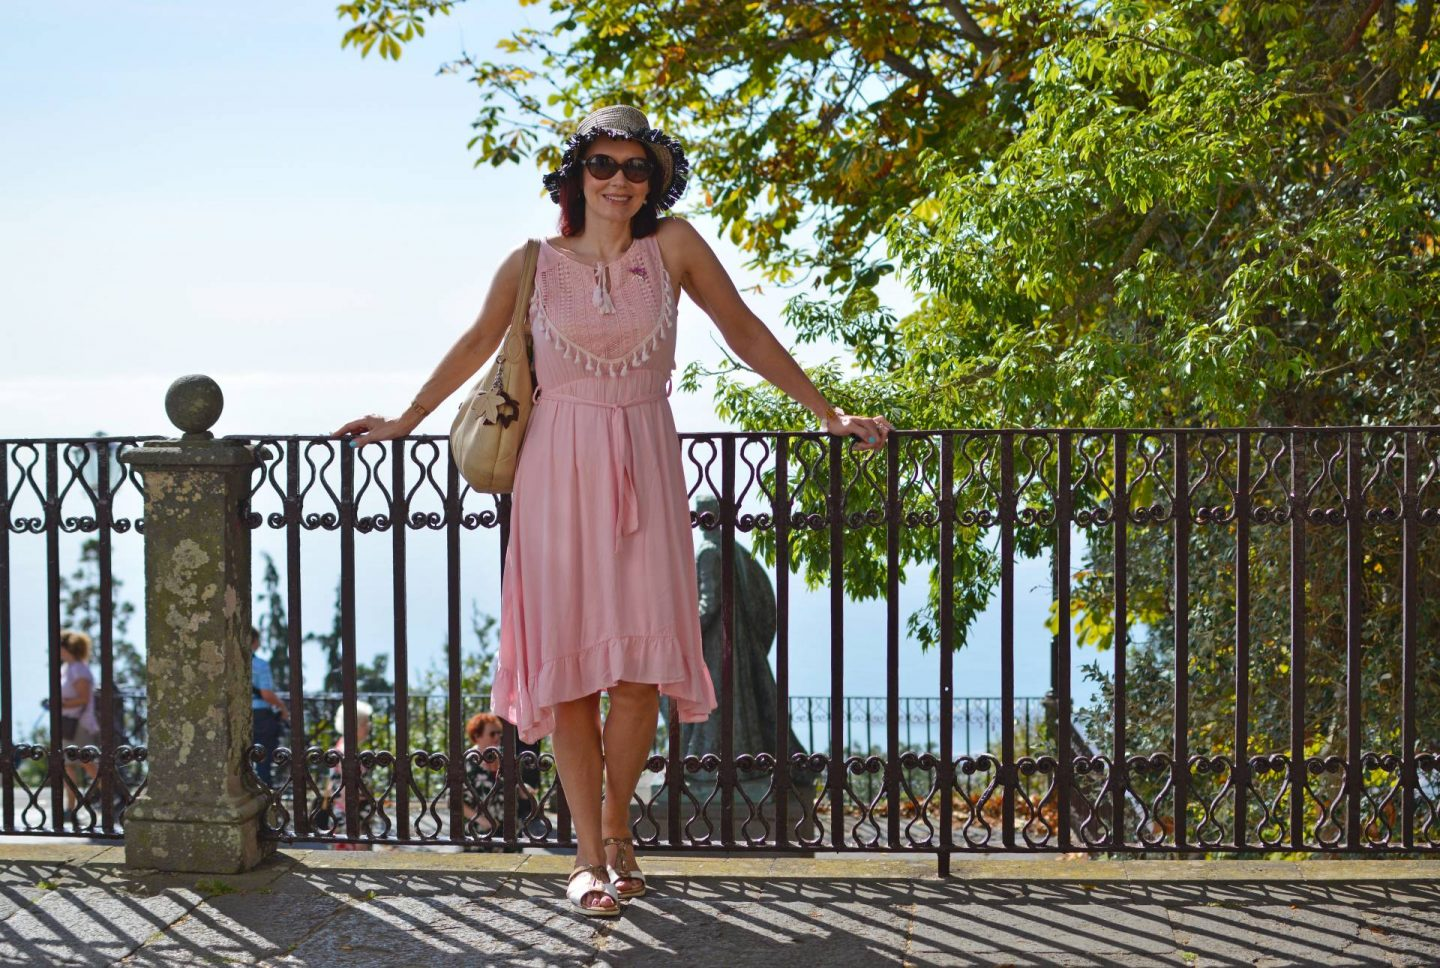 Cable Cars and Toboggans, pink Oeyes sundress. Sightseeing in Madeira